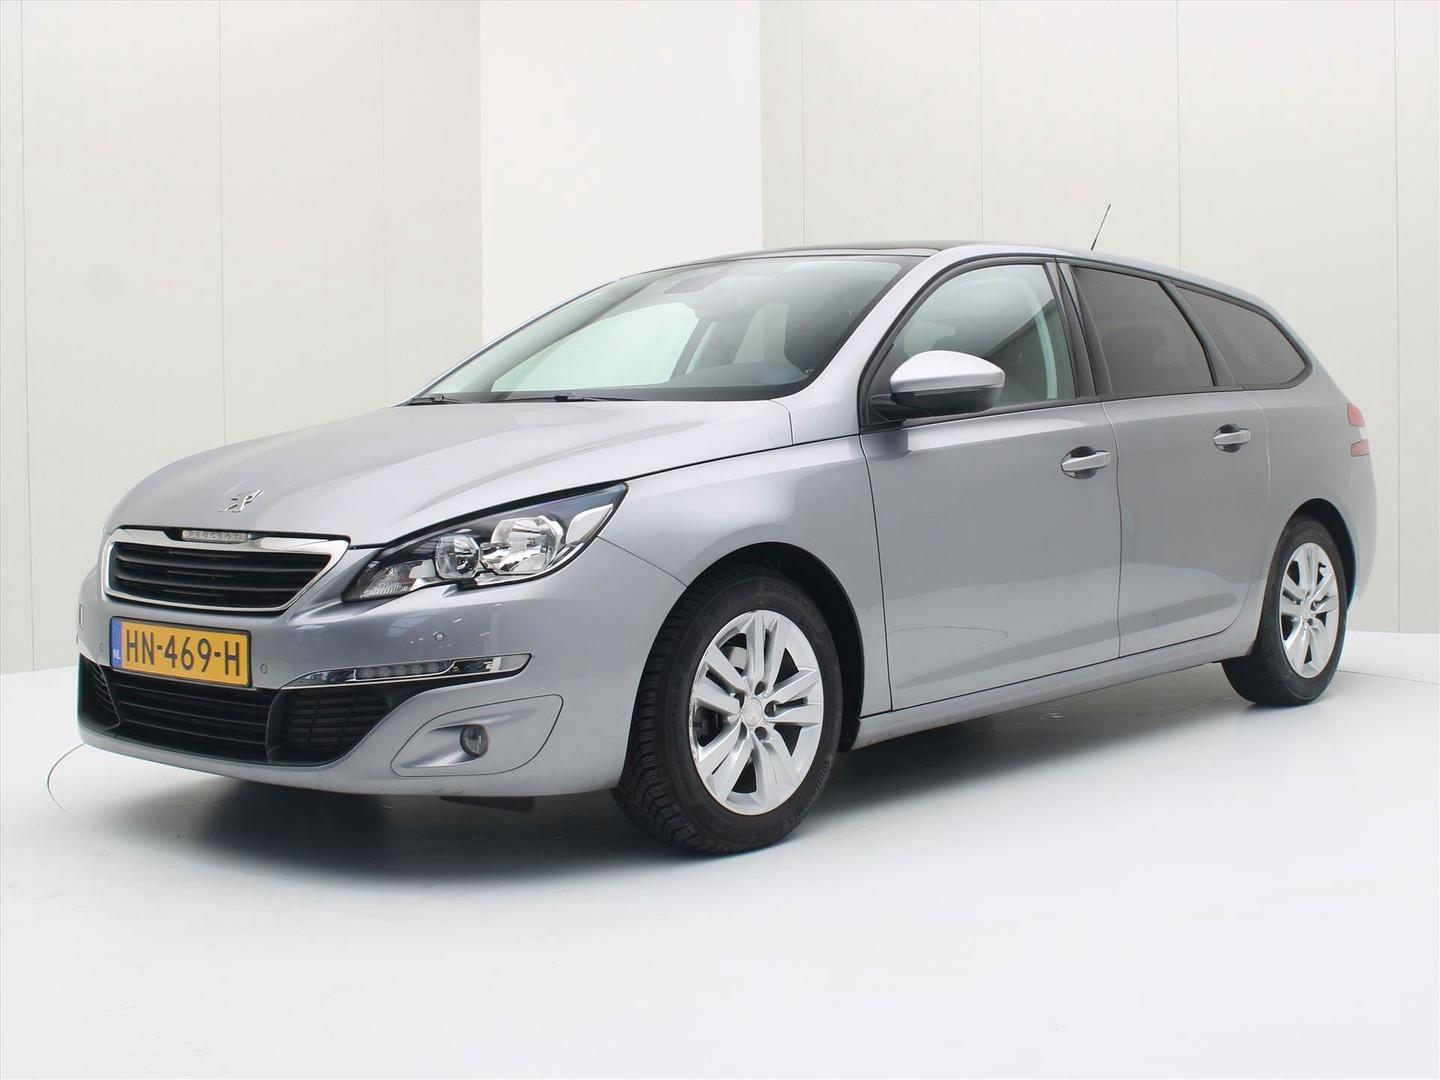 Peugeot 308 Sw 1.6 bluehdi blue lease executive pack [ panodak+camera+pdc+cruise ]